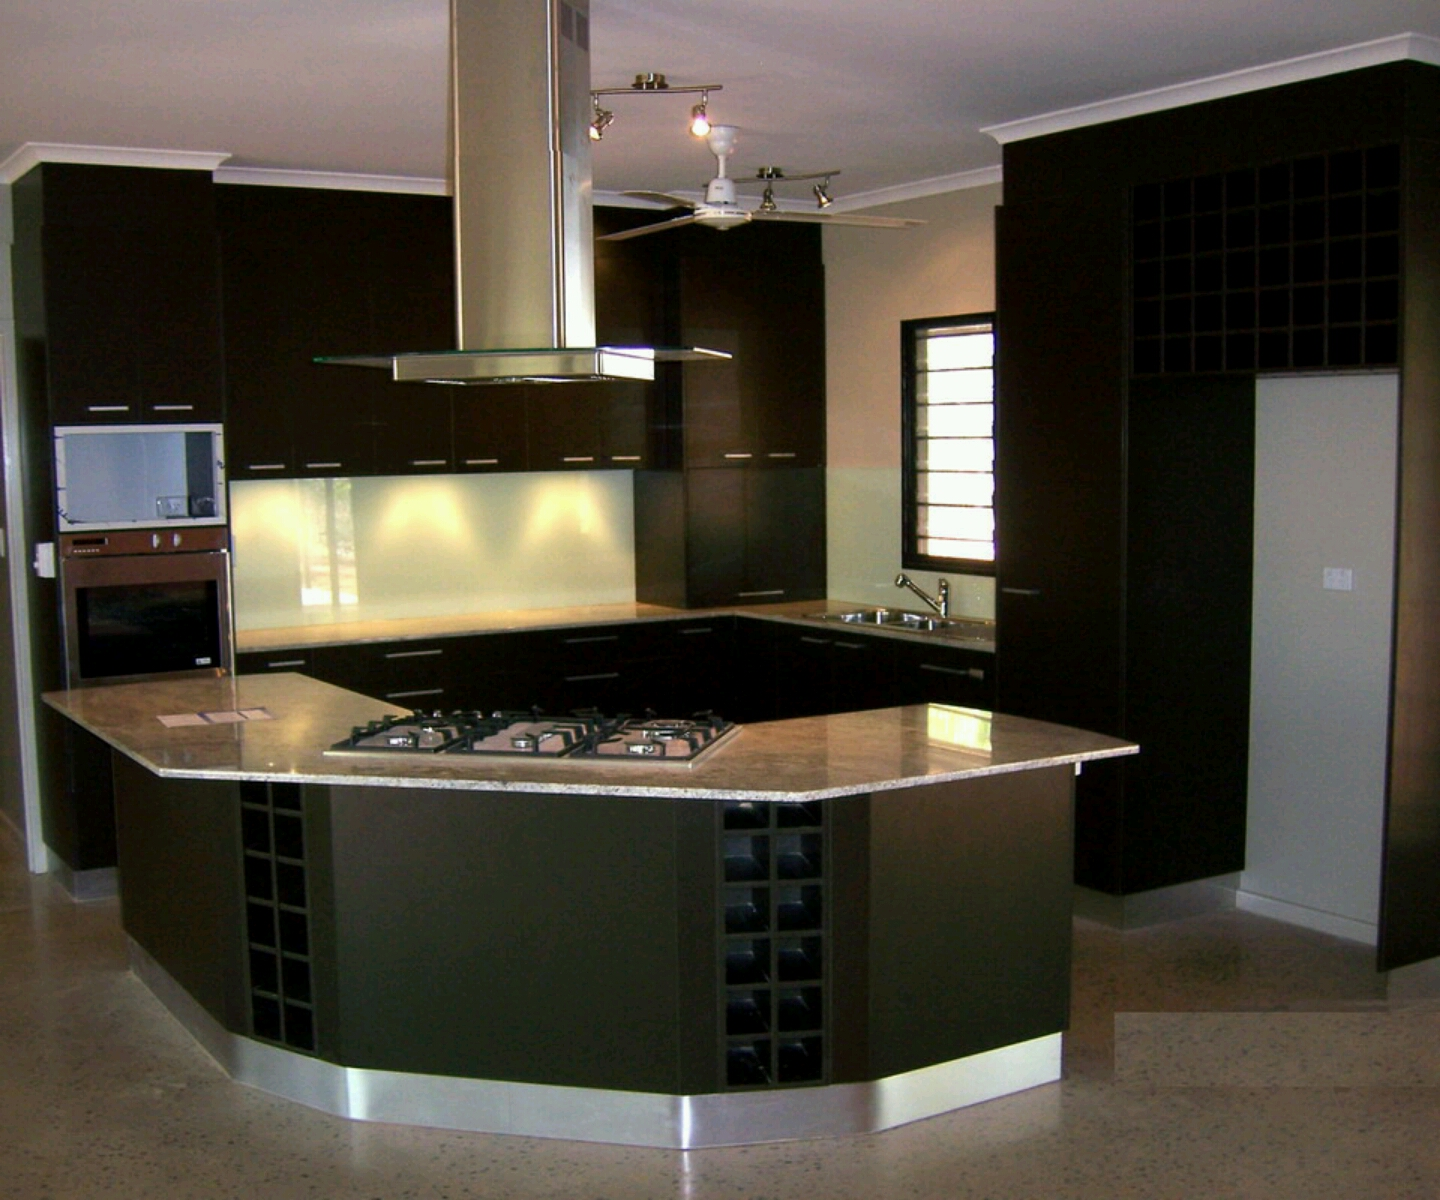 kitchen cabinets design and ideas photo - 4